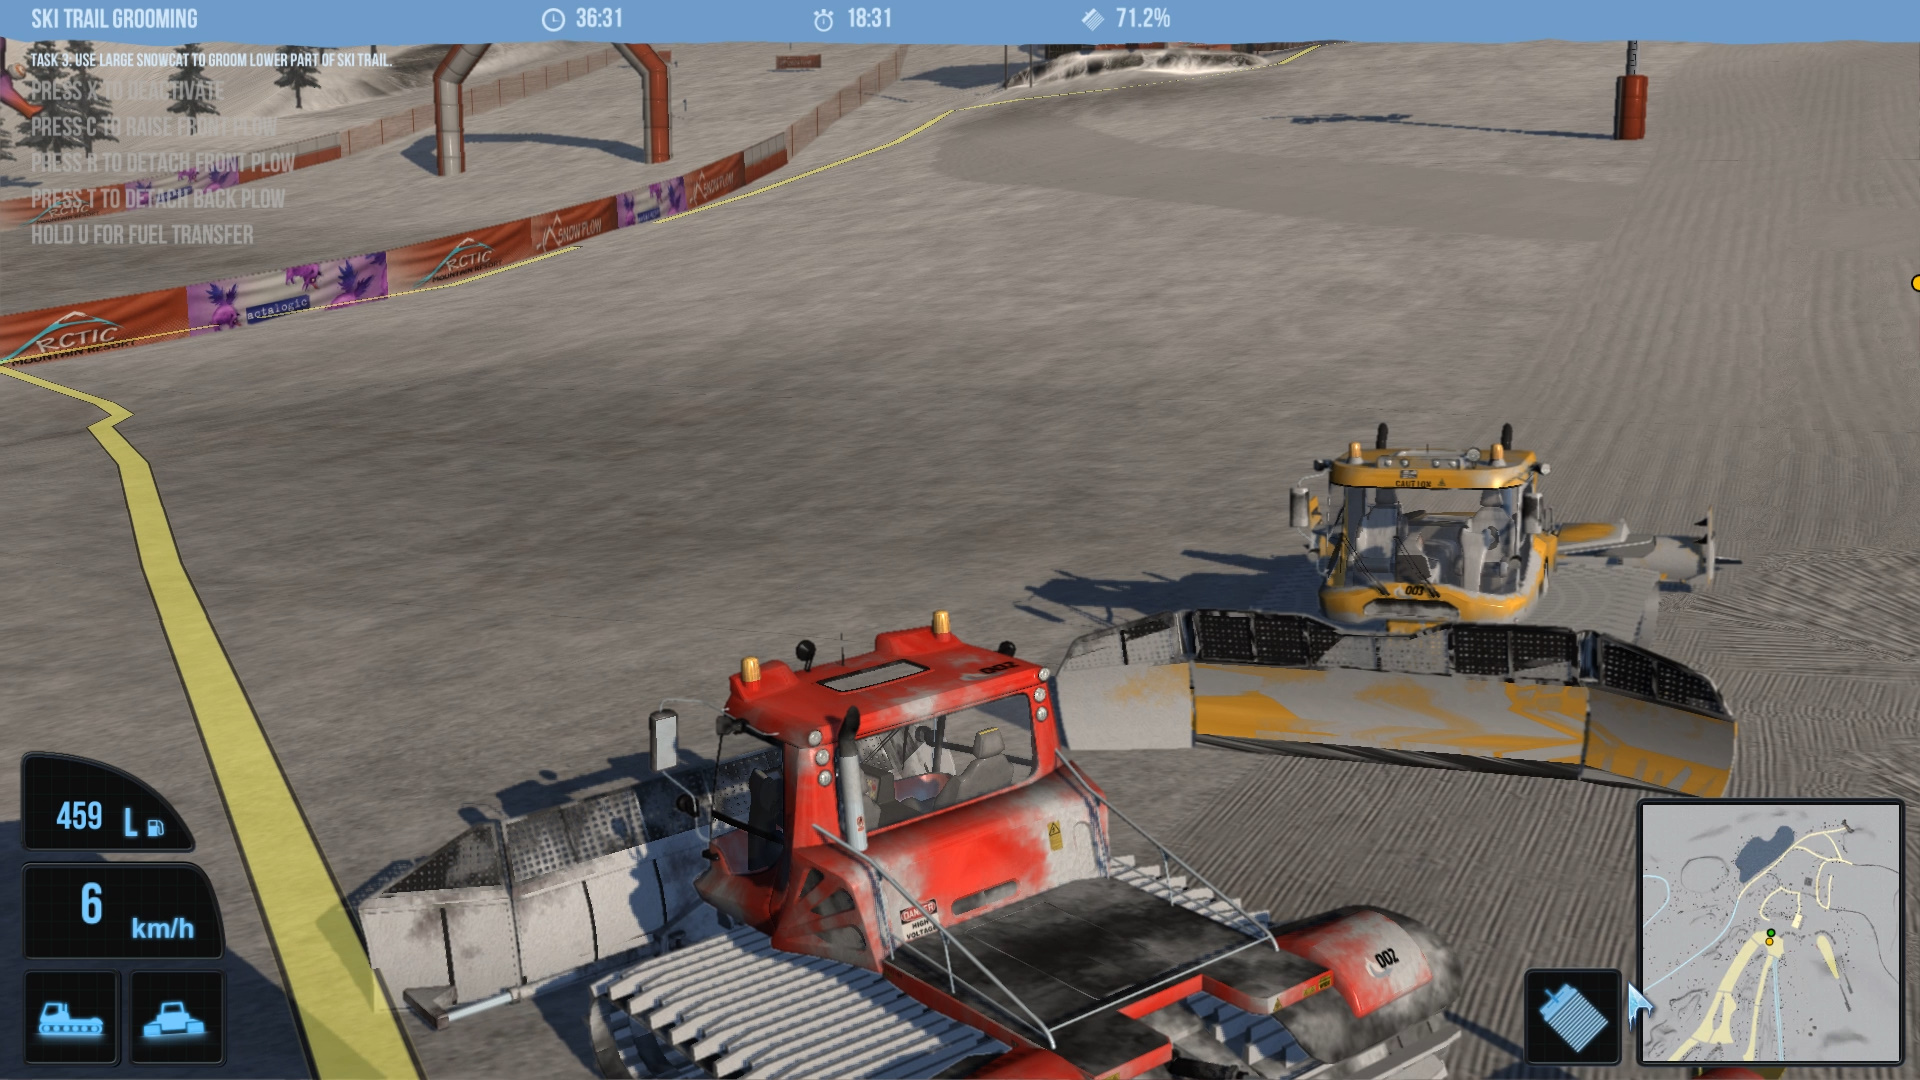 Snowcat Simulator screenshot